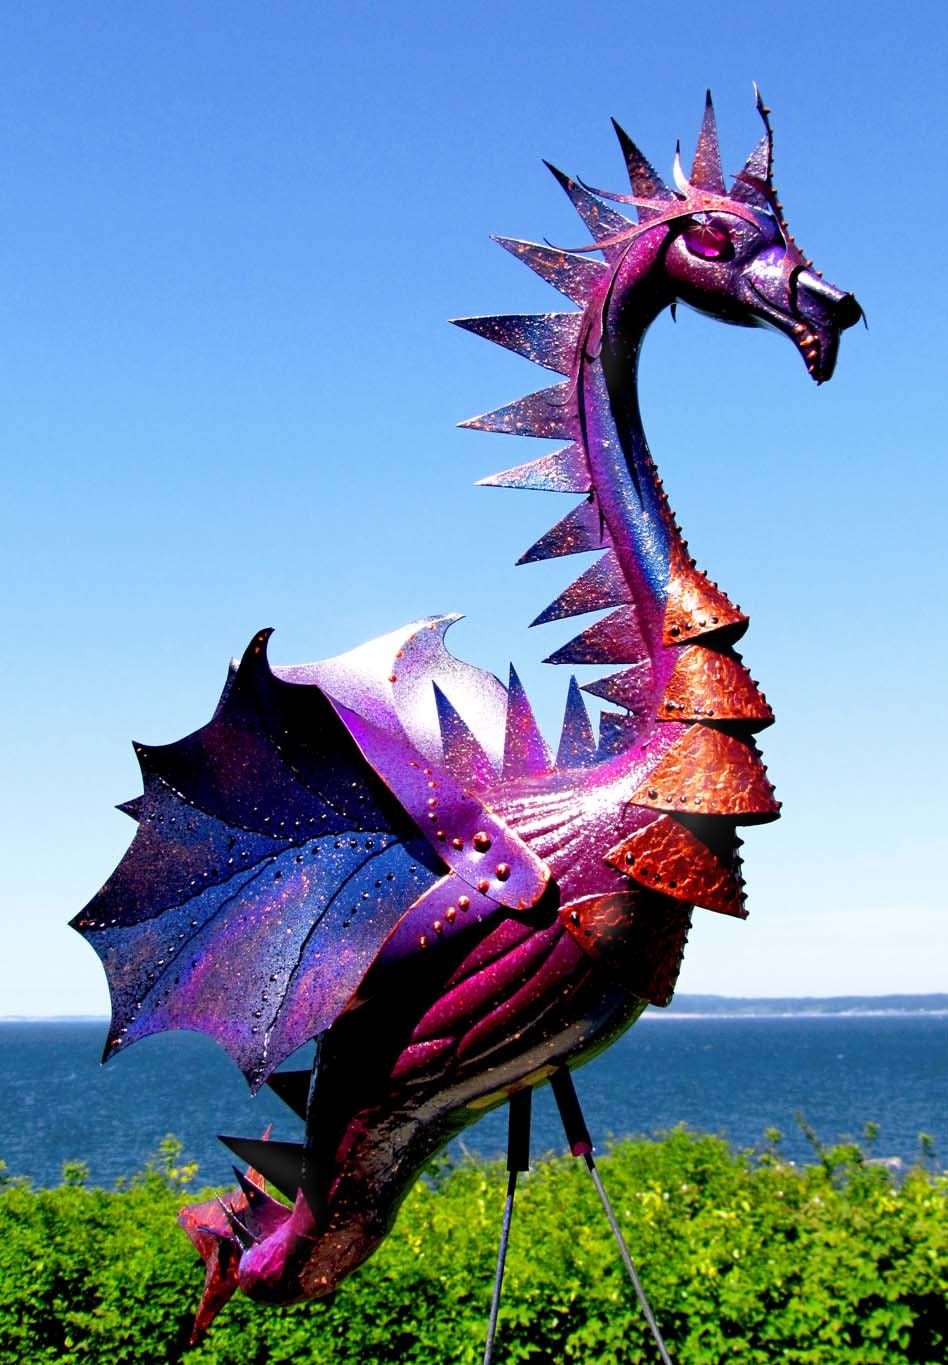 Deep Purple Dragon flamingo - handmade outdoor garden art sculpture created from a recycled plastic flamingo. - CedarMoon